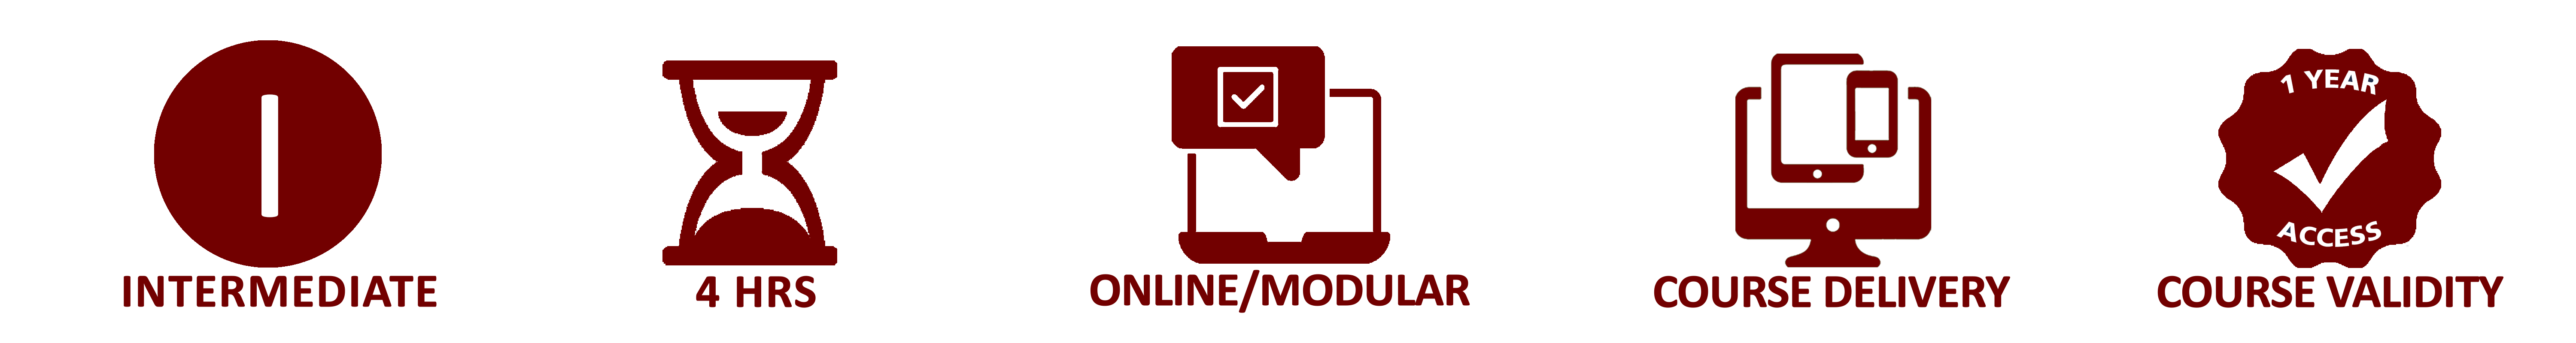 Outlook 2016 Essentials - E-Learning Courses - Mandatory Compliance UK -